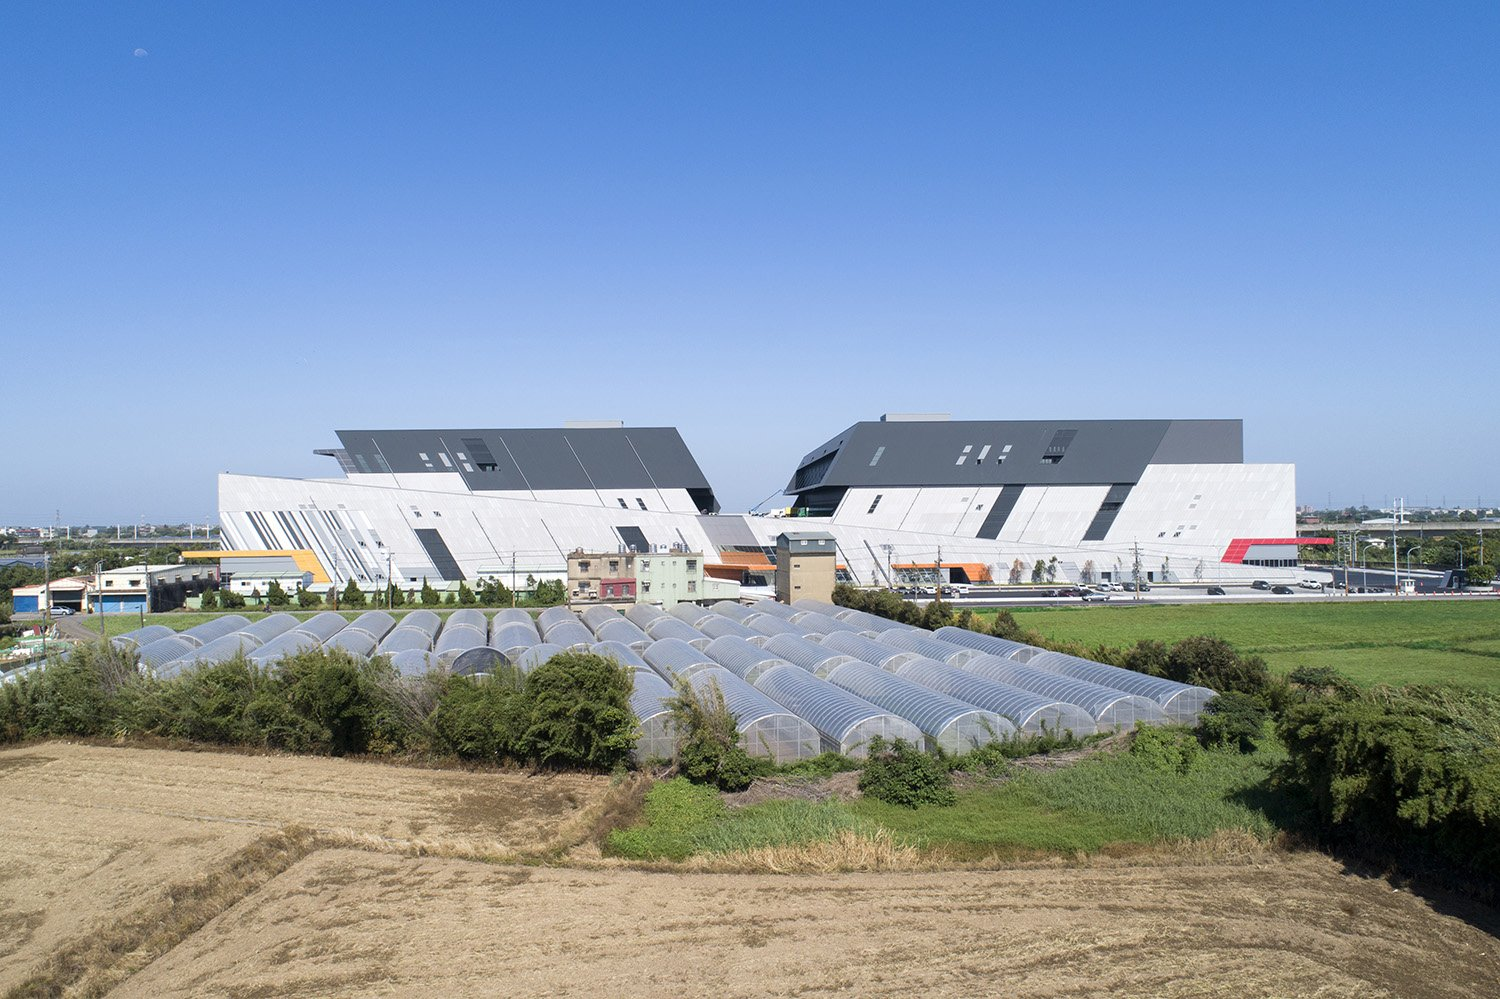 two 120m ramps connect the warehouses to create maximum efficiency Wei-Shih Hsieh